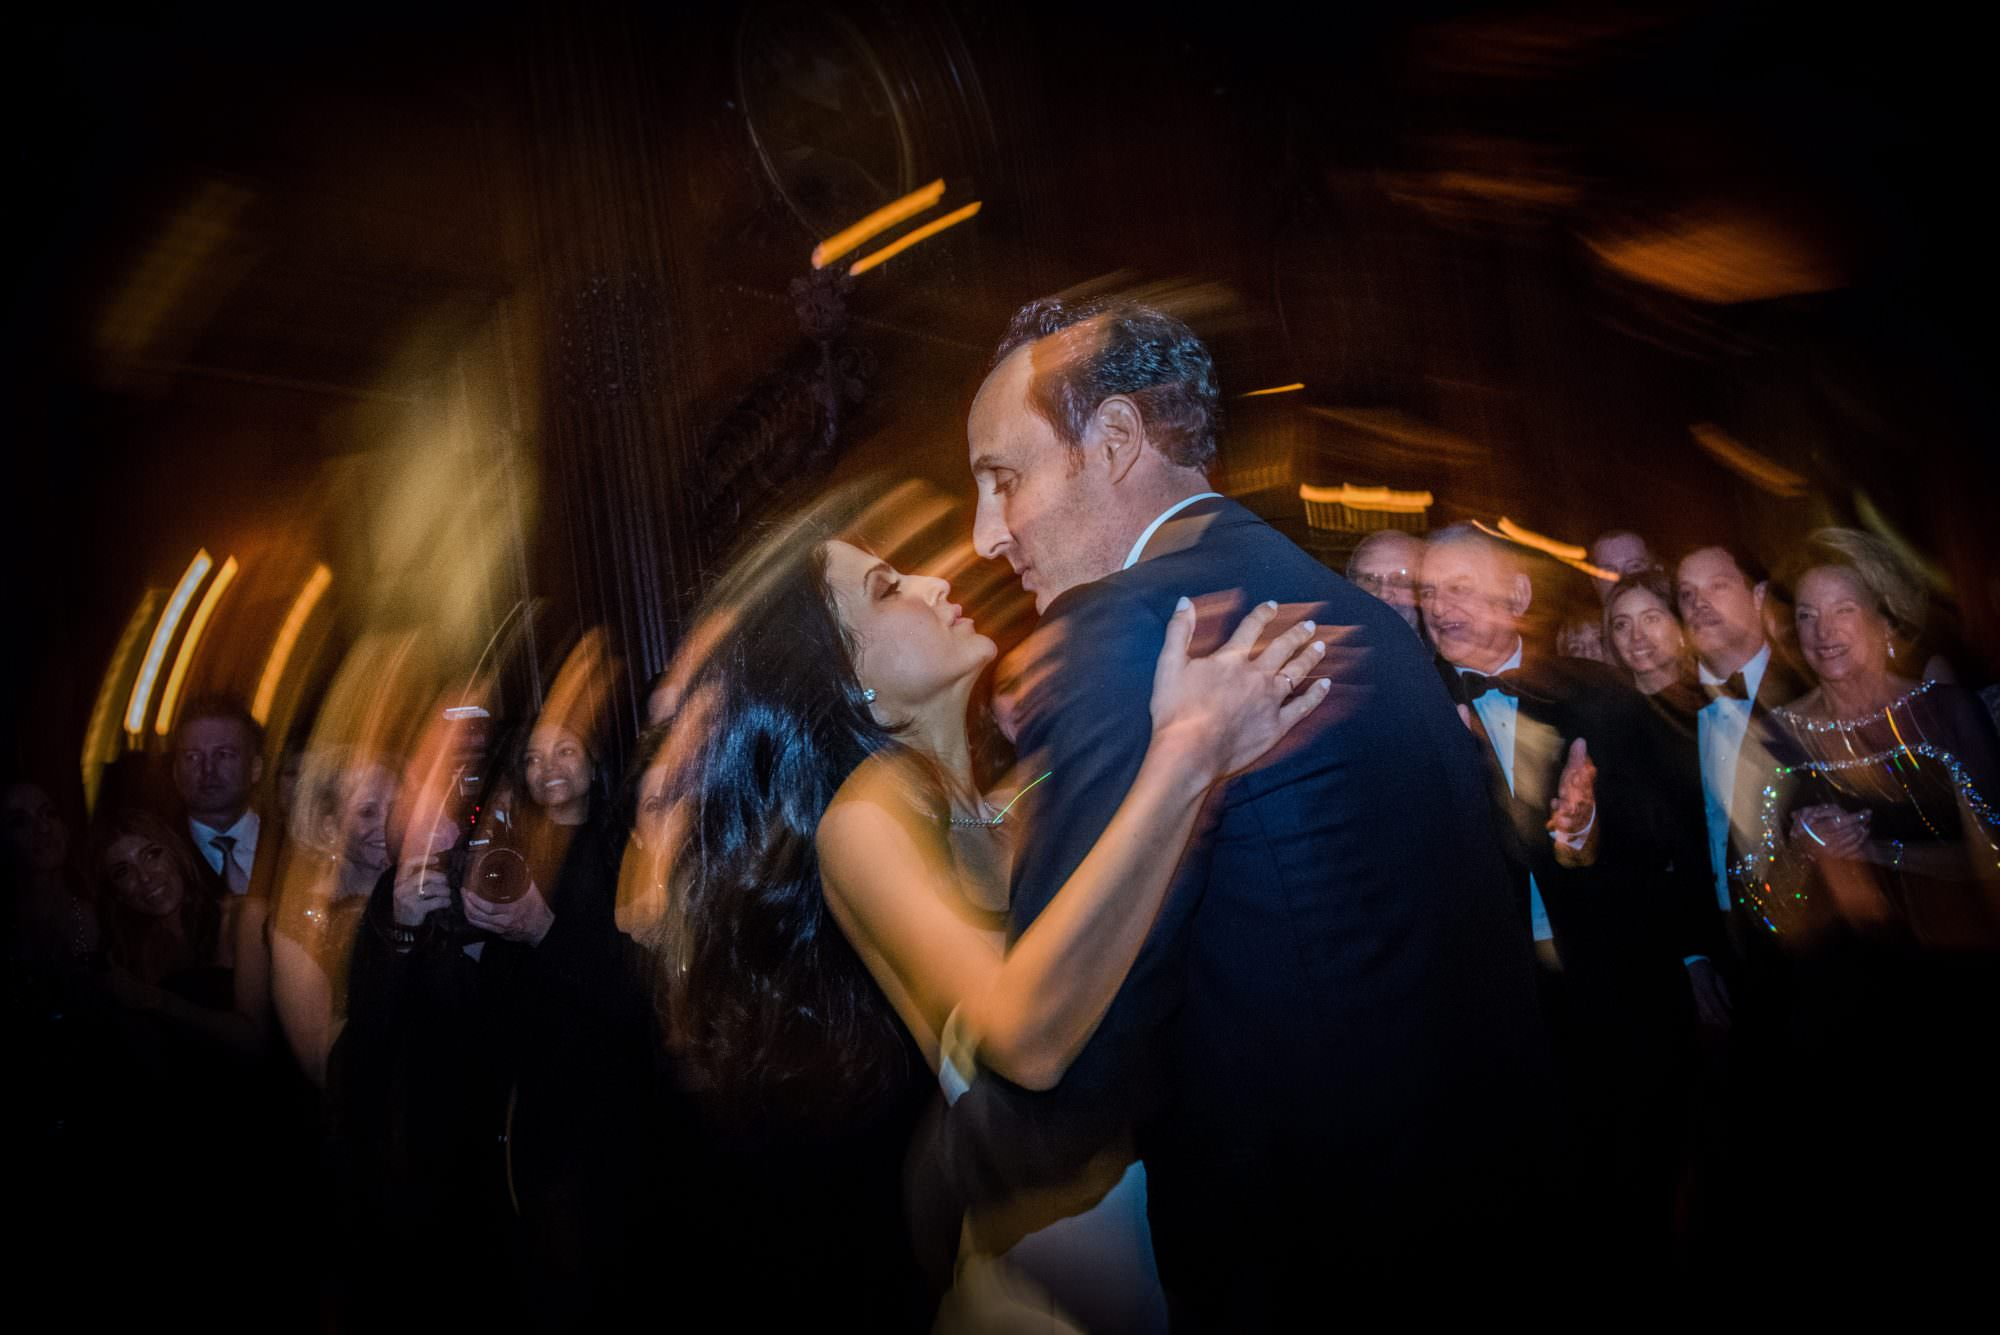 new york city artistic beautiful art wedding photography photographer photo groom bride emotional reception grand entrance jewish parents celebrating mazel tov first dance